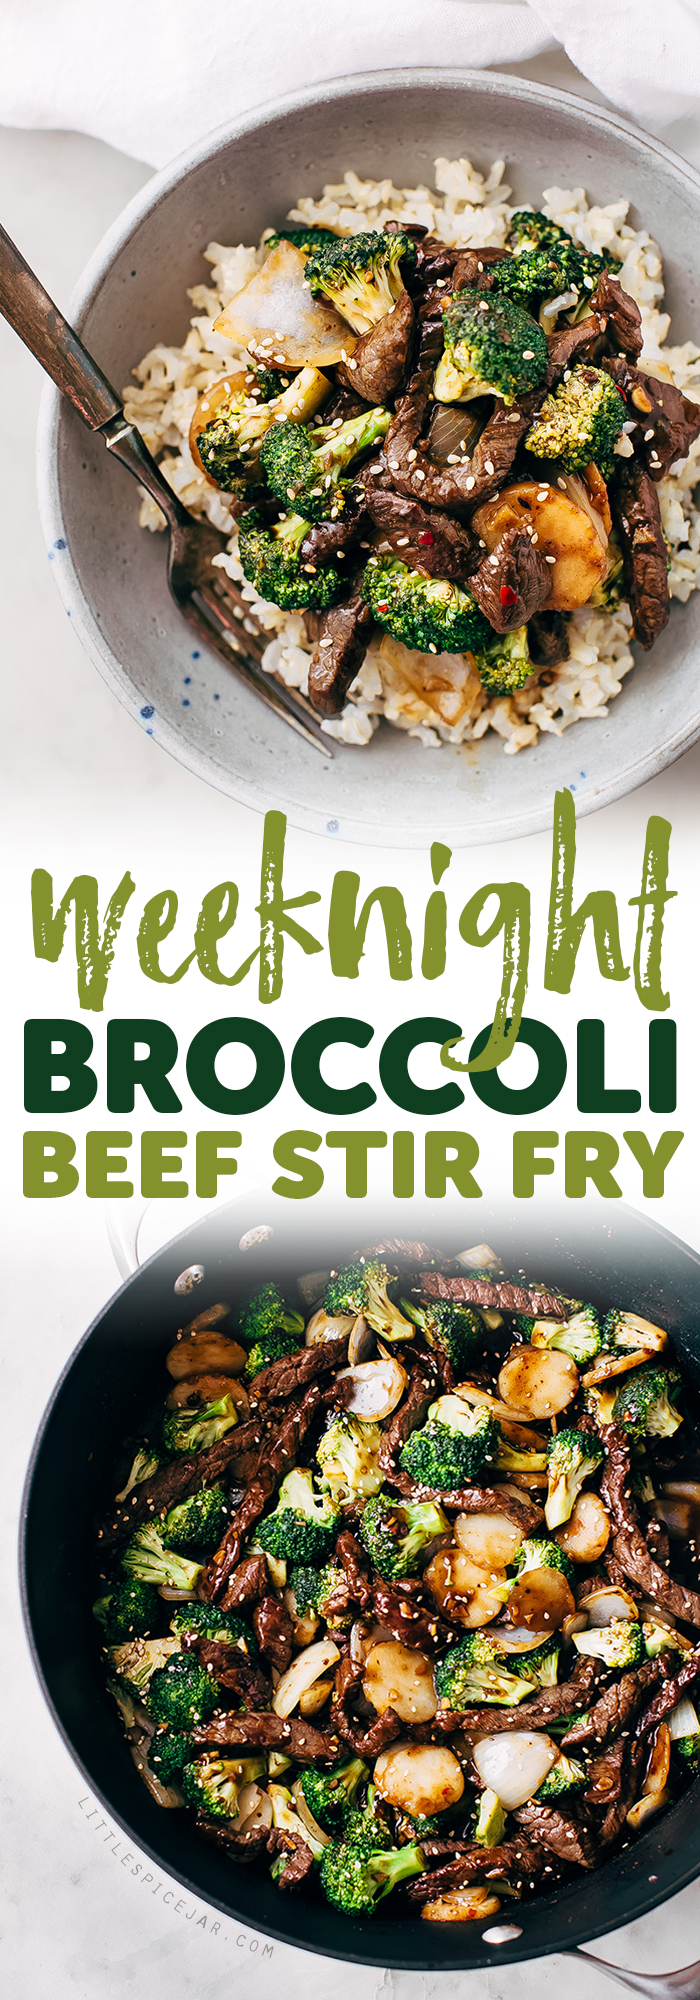 Best Easy Broccoli Beef Stir Fry Recipe - the easiest recipe that takes in the ballpark of 30 minutes to make and tastes better than takeout! #beefandbroccoli #broccolibeef #broccolibeefstirfry #stirfry #takeout | Littlespicejar.com